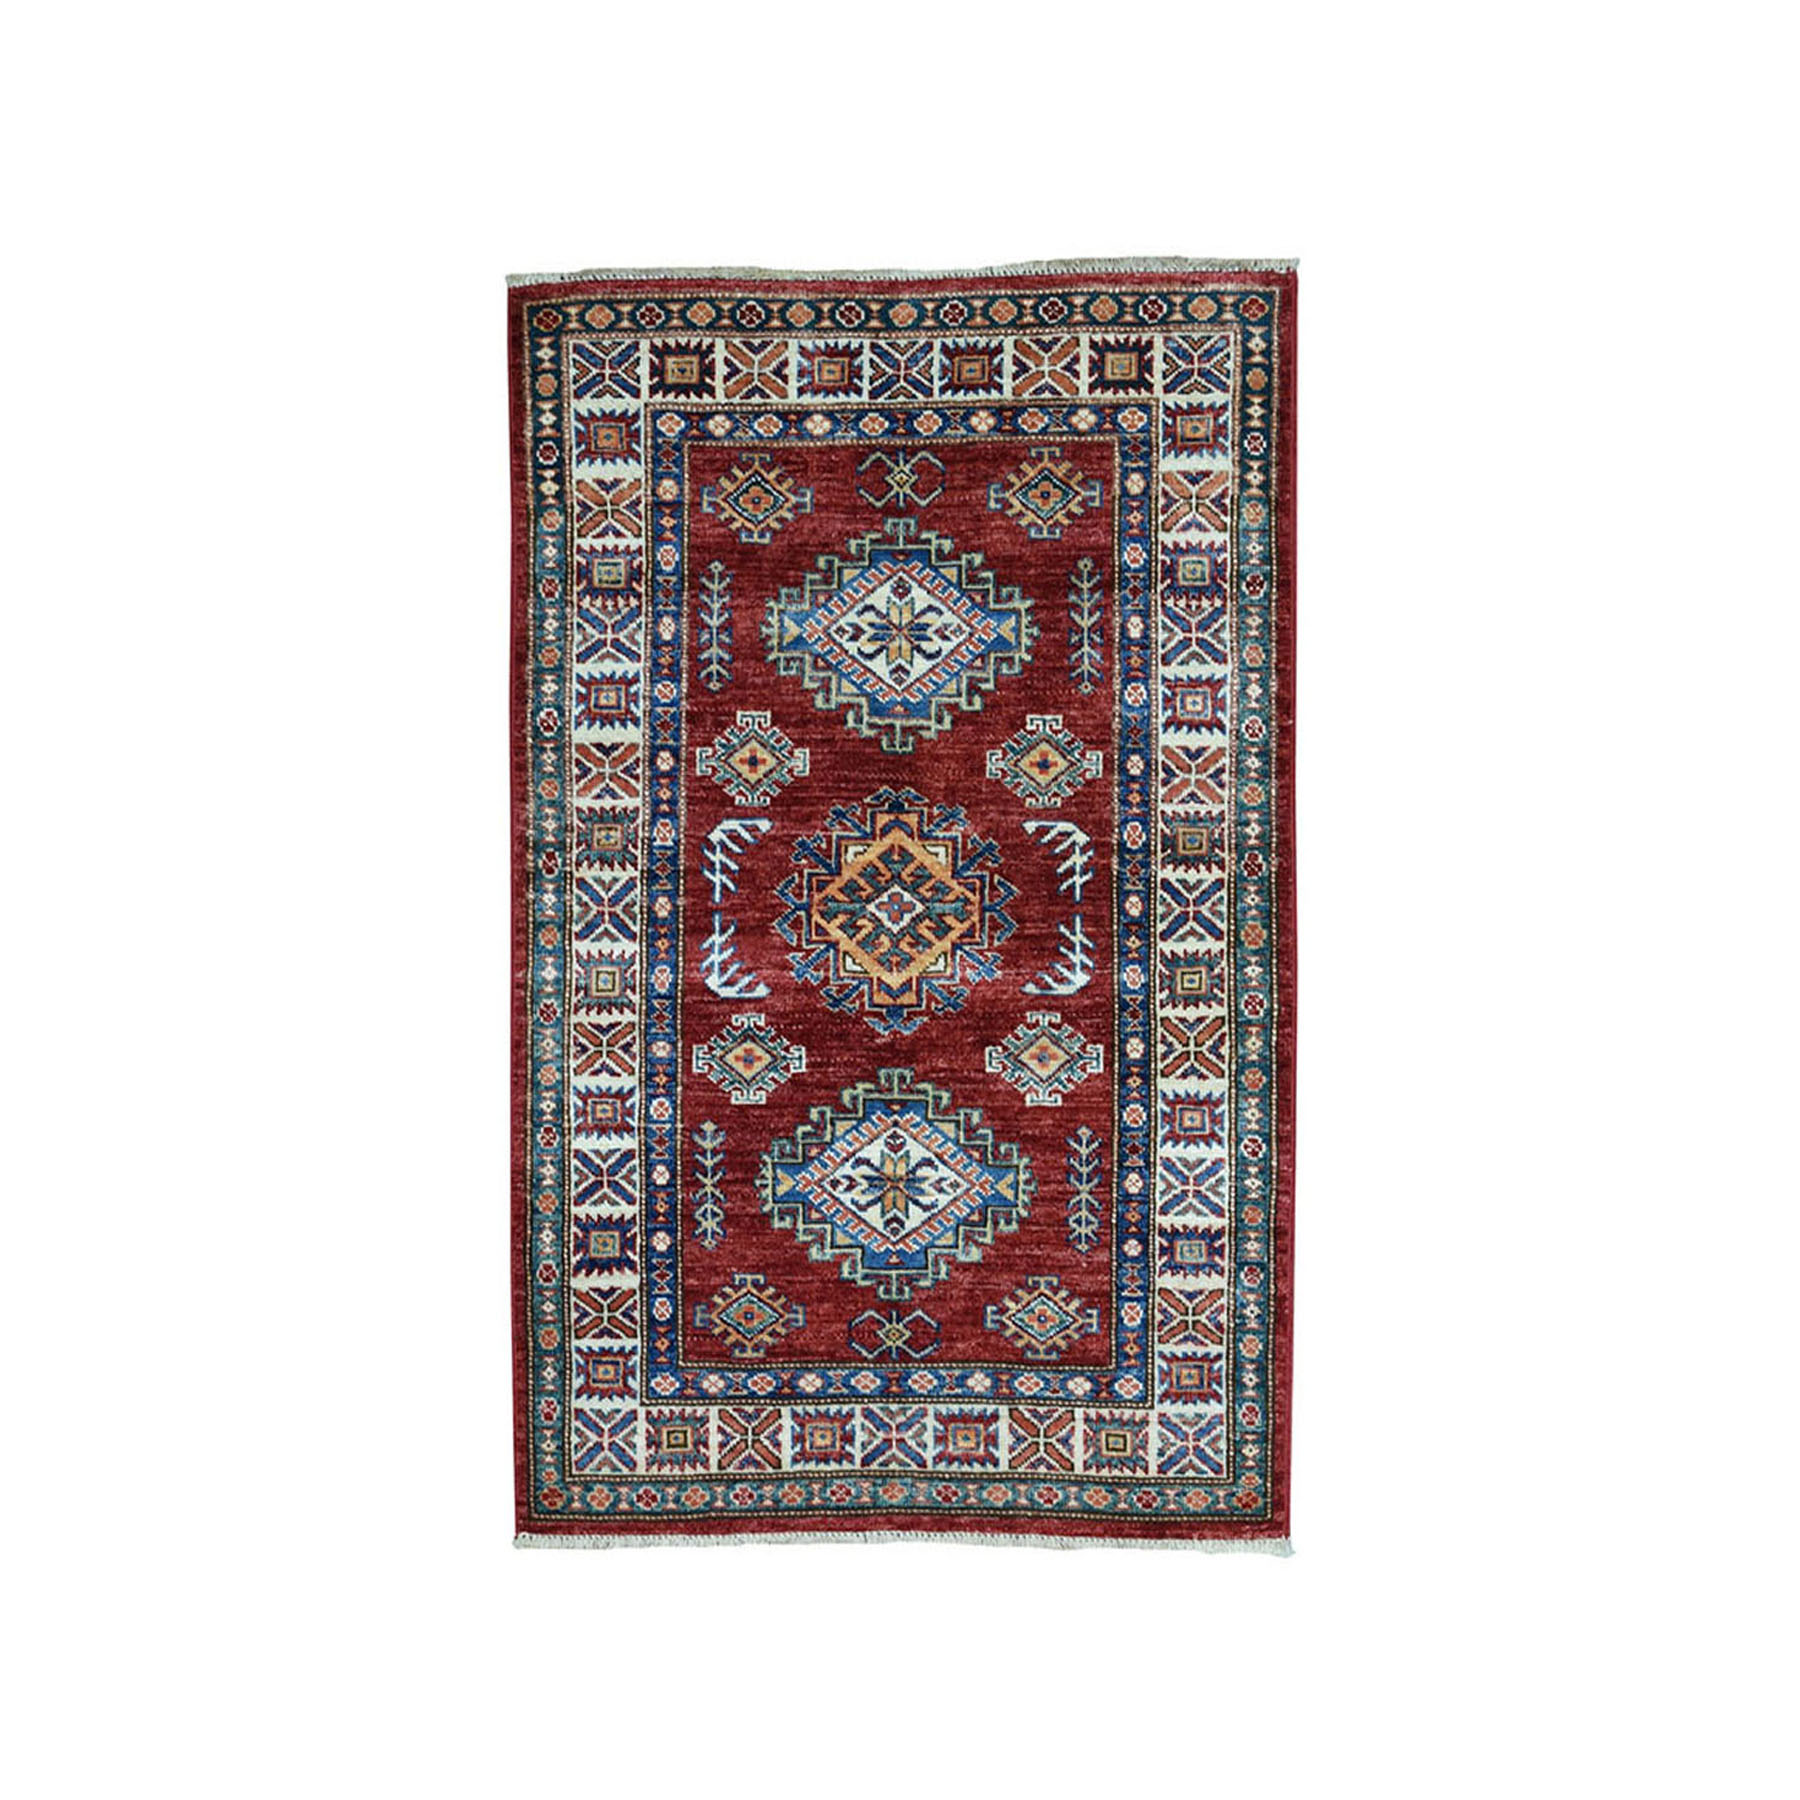 "2'8""X3'10"" Red Super Kazak Pure Wool Geometric Design Hand-Knotted Oriental Rug moae0890"